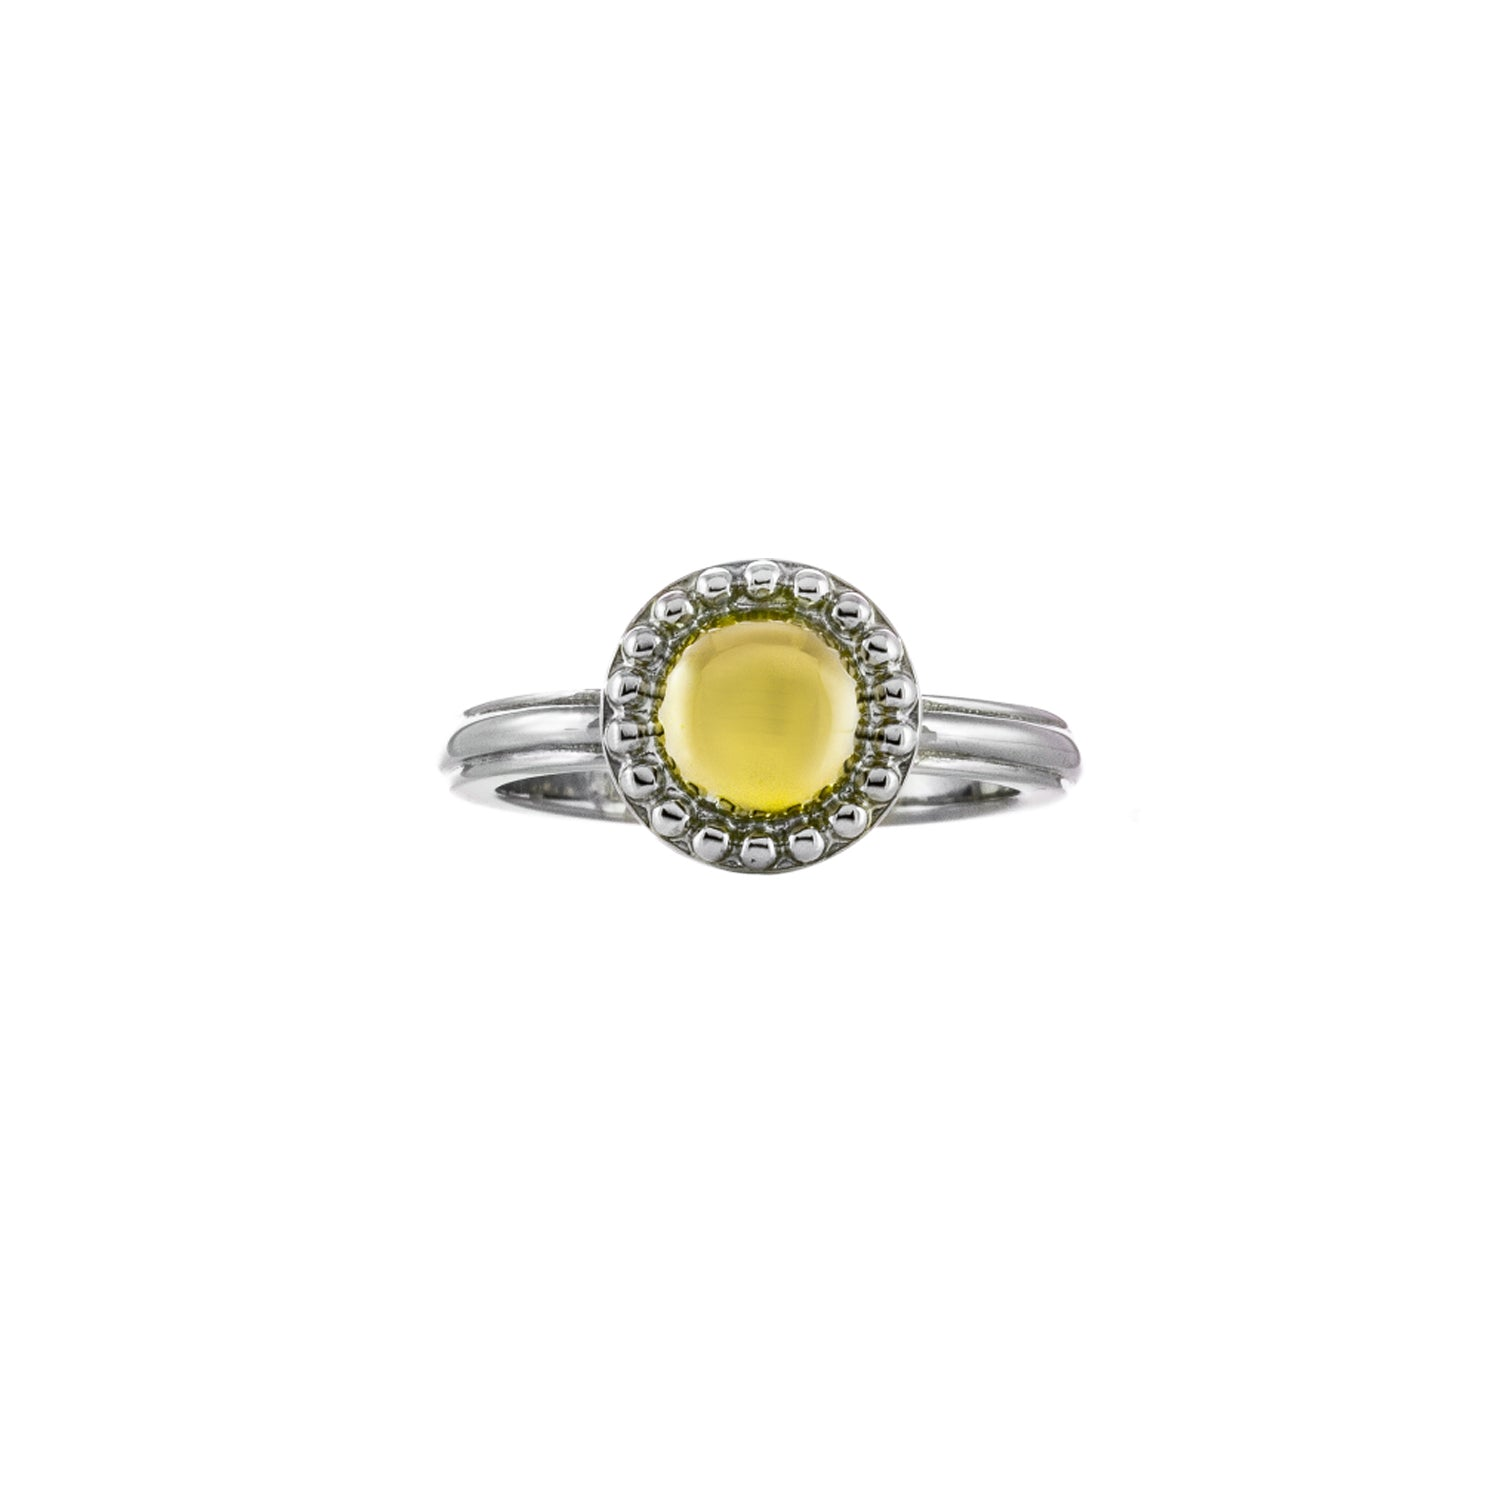 Charles Krypell Firefly Two-Tone Ring with Yellow Gold